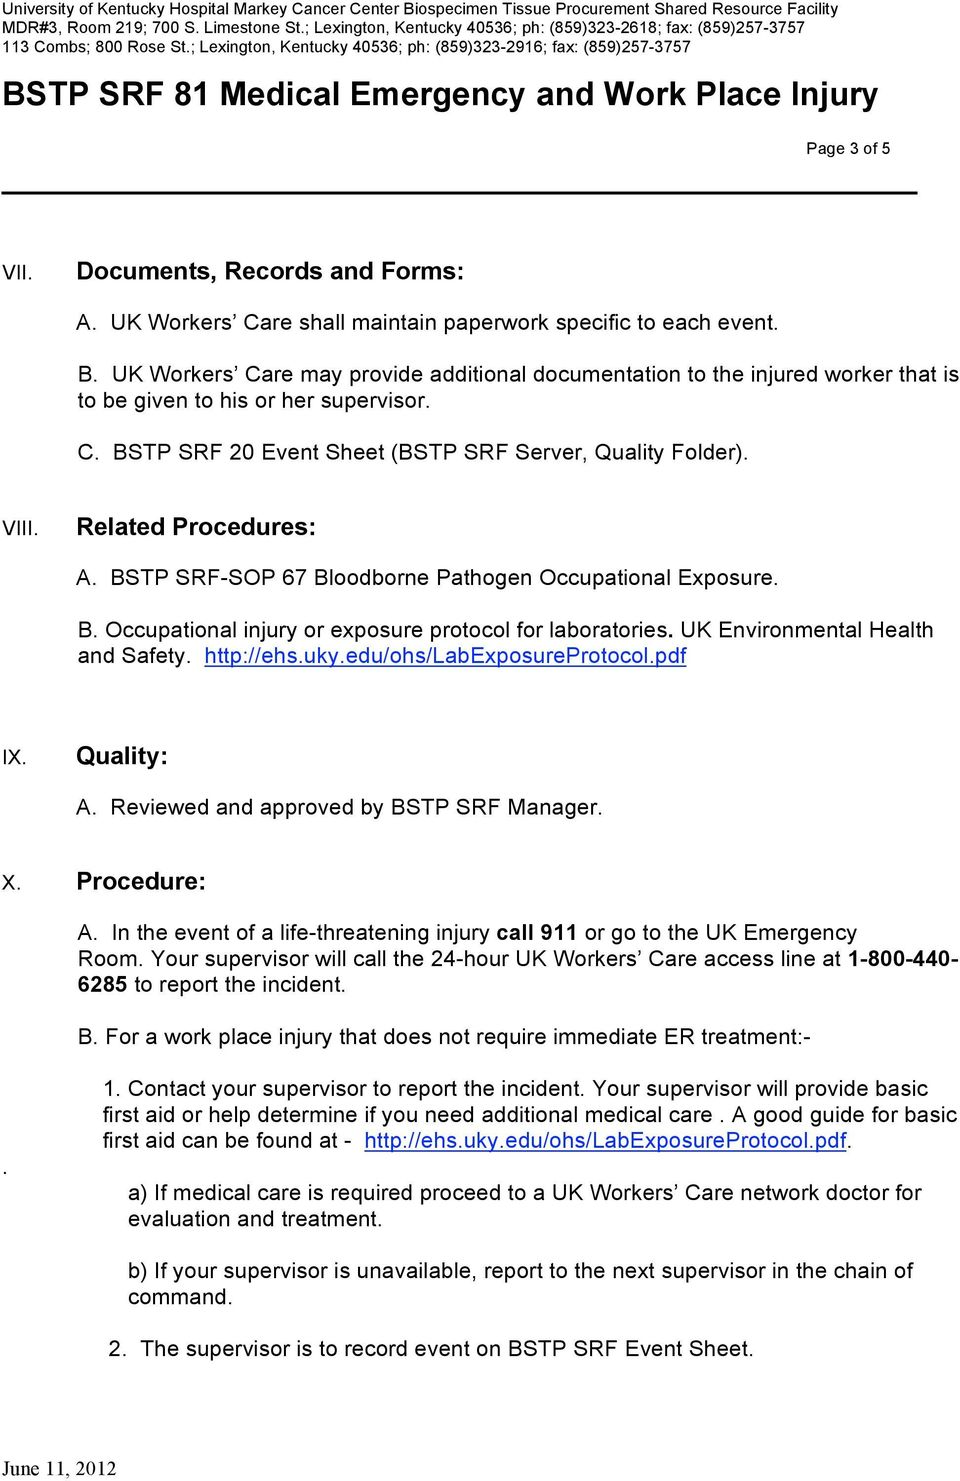 Related Procedures: A. BSTP SRF-SOP 67 Bloodborne Pathogen Occupational Exposure. B. Occupational injury or exposure protocol for laboratories. UK Environmental Health and Safety. http://ehs.uky.